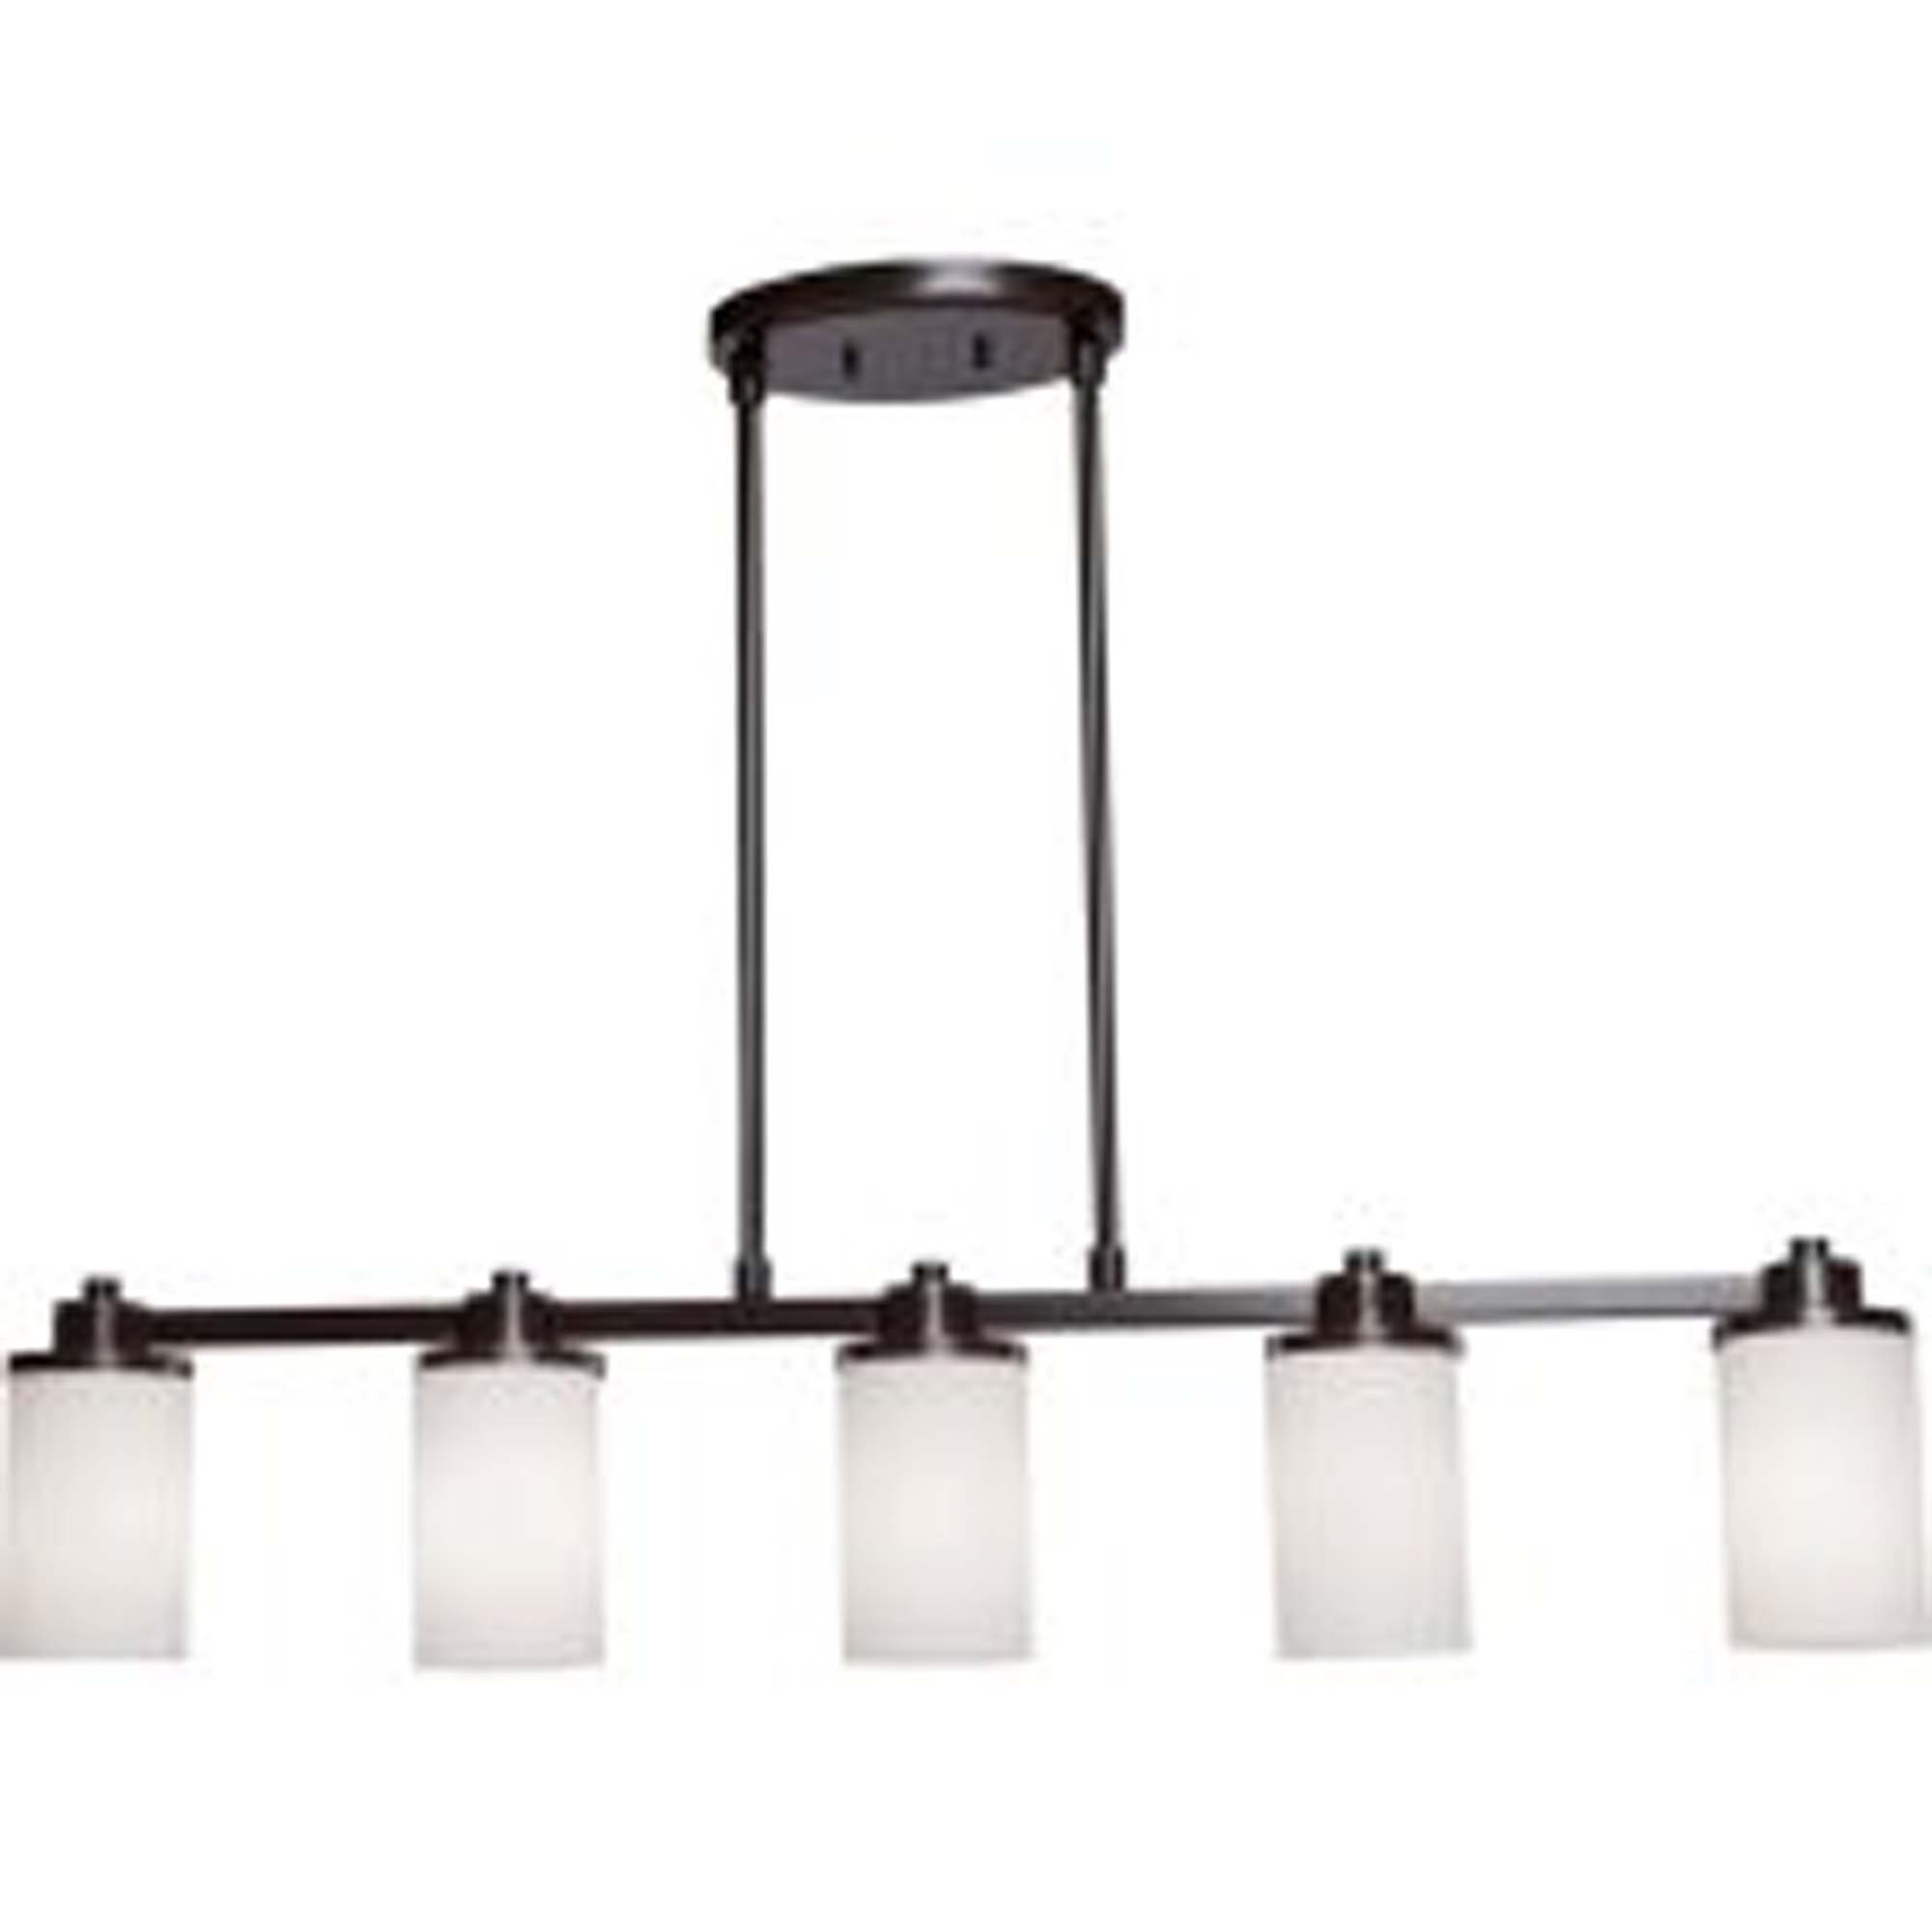 Artcraft Lighting Parkdale 5-Light Island Fixture, Oil Rubbed Bronze